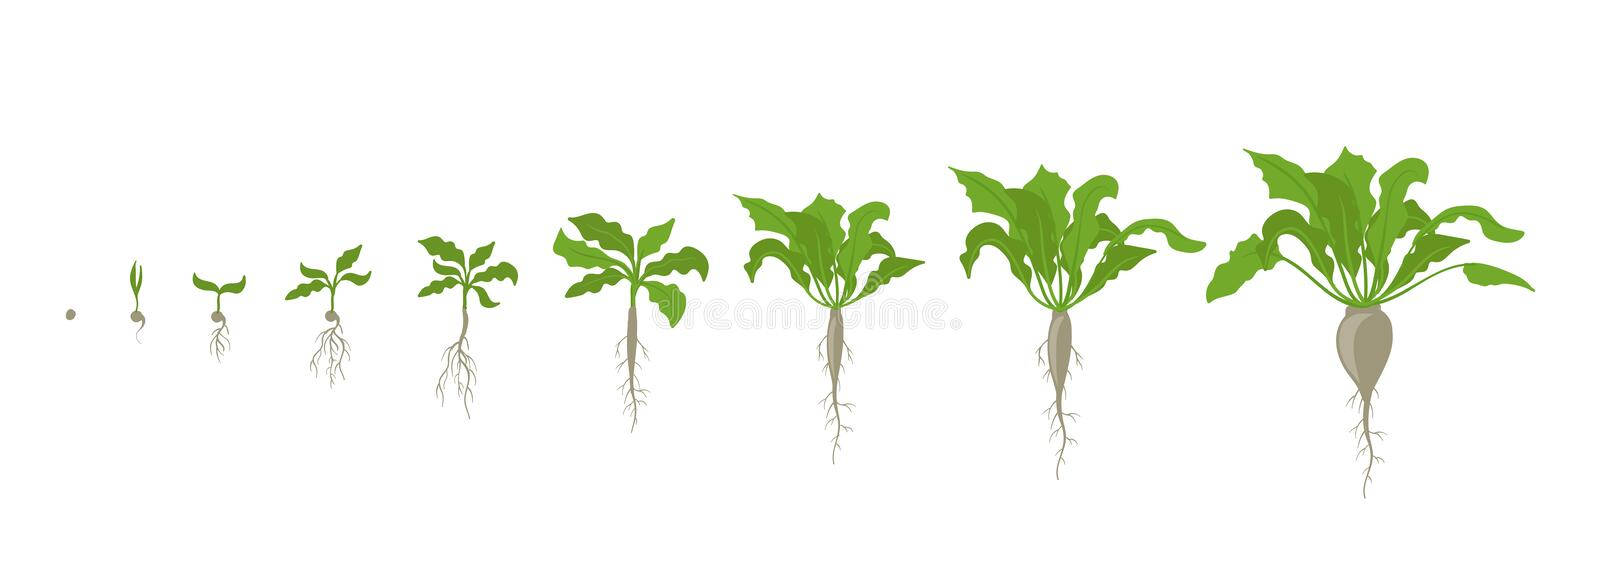 Sugar beet plant. Growth stages. Vector illustration. Beta vulgaris subsp. Ripening period. The life cycle. Root grown. Sugar beet plant. Growth stages. Vector royalty free illustration